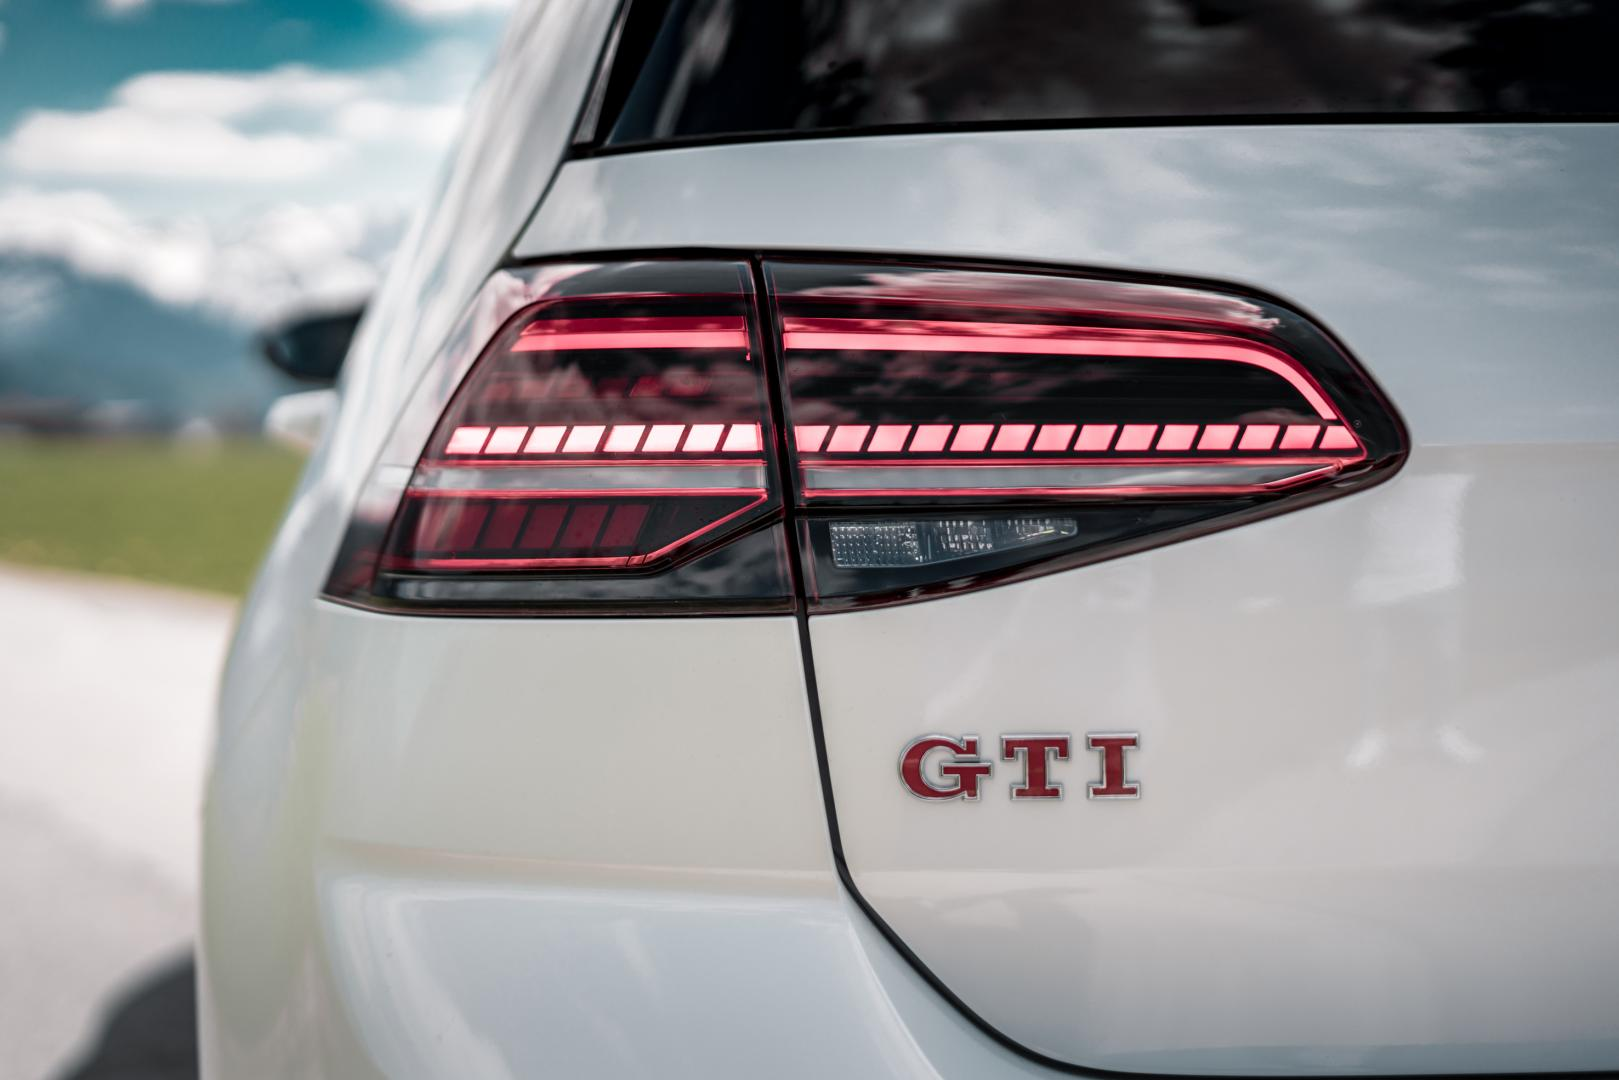 Abt Volkswagen Golf GTI TCR achterlicht logo badge